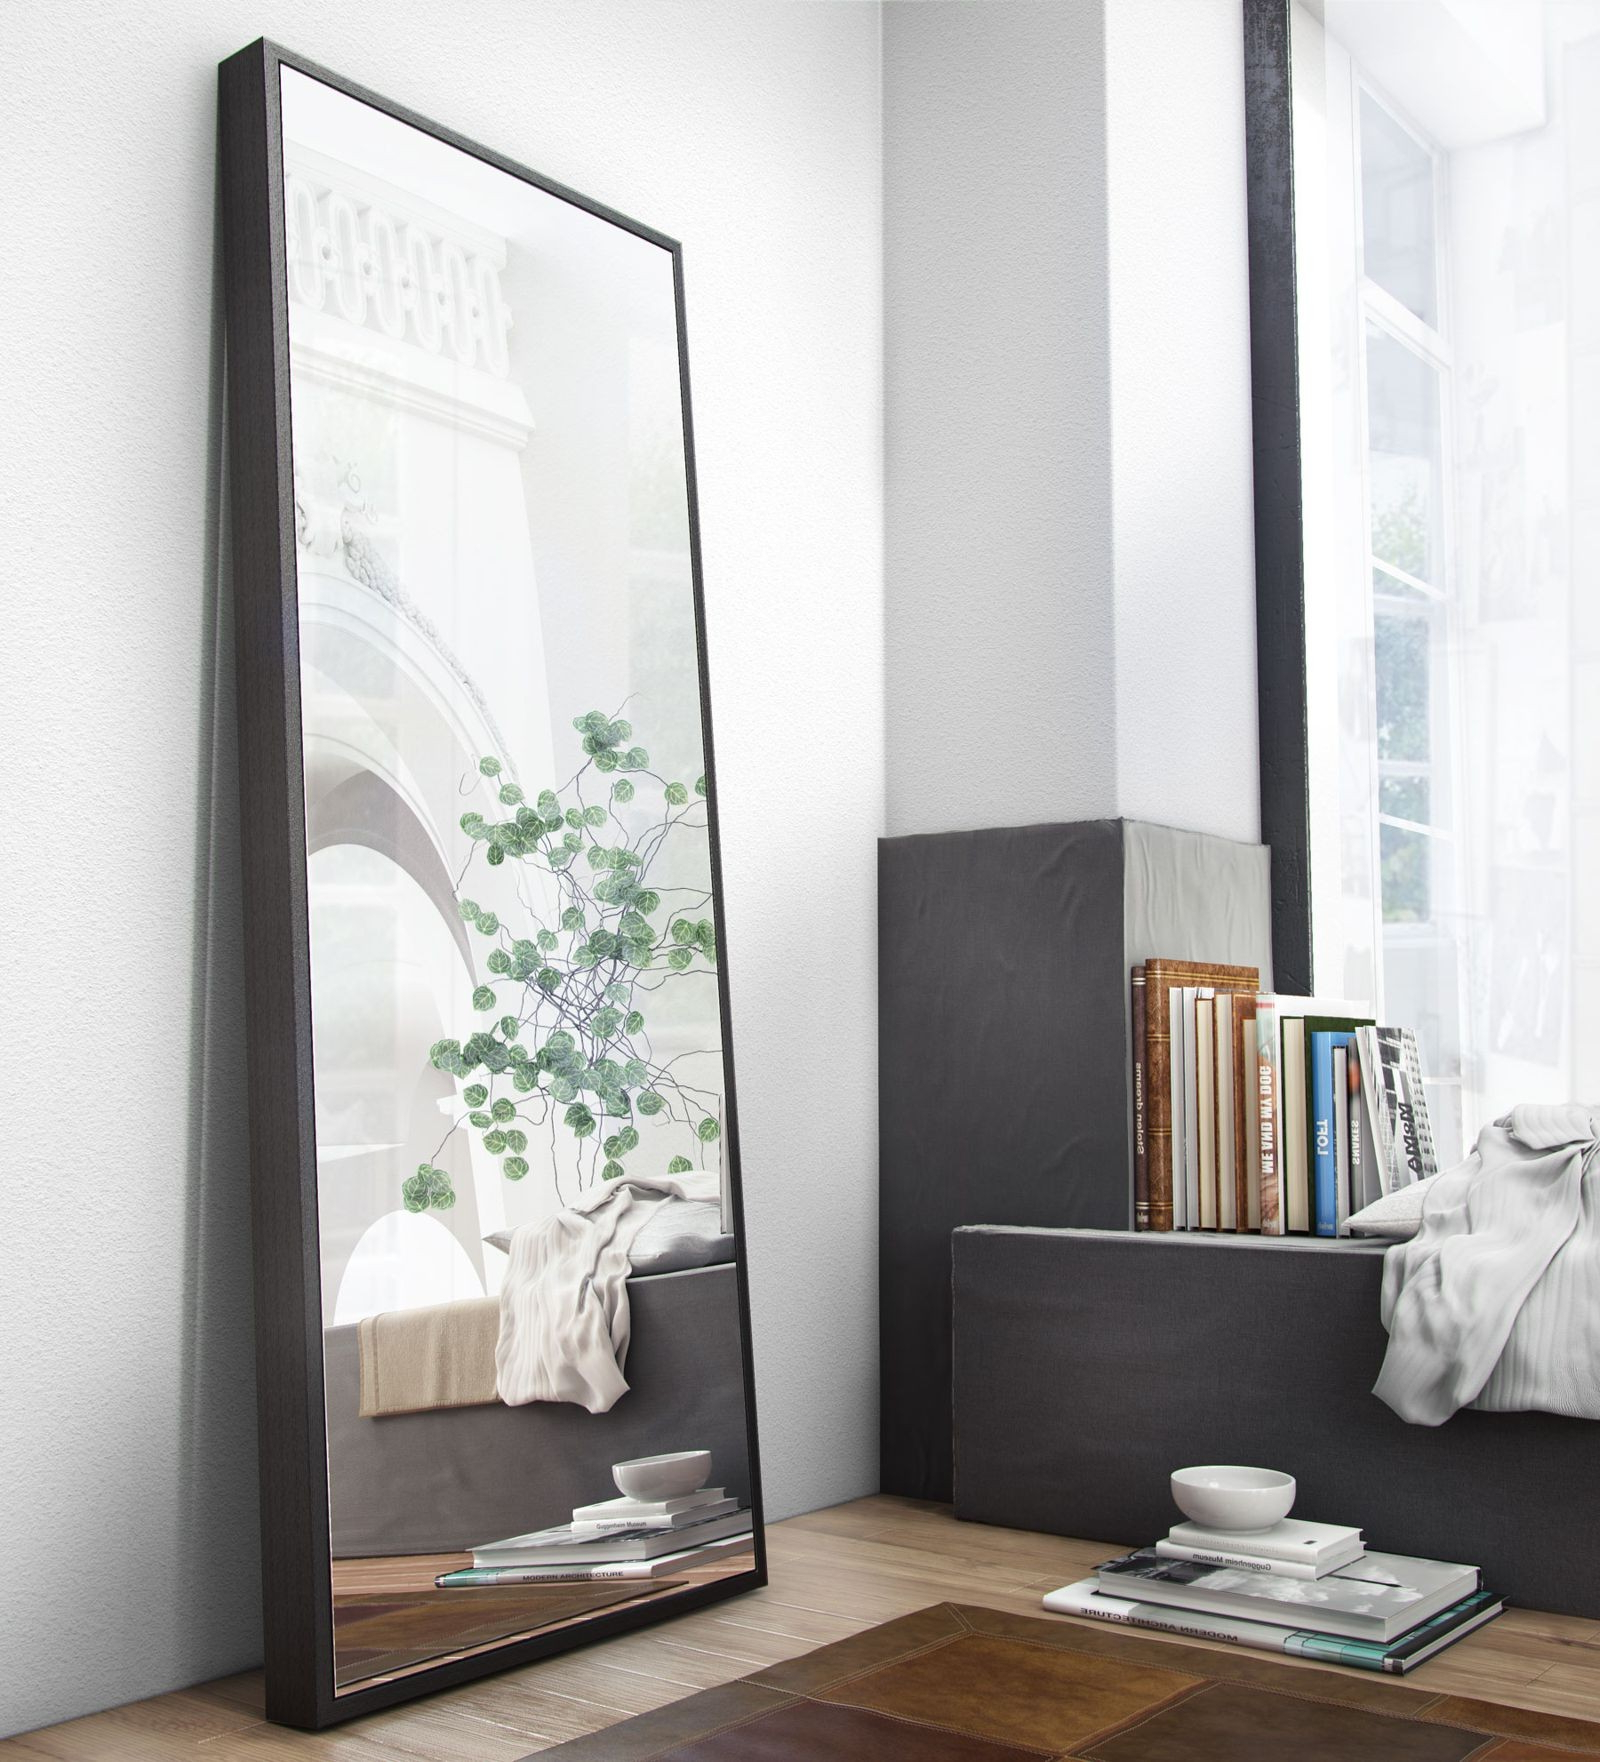 Greene Mirrormodloft Regarding Latest Standing Wall Mirrors (View 10 of 20)